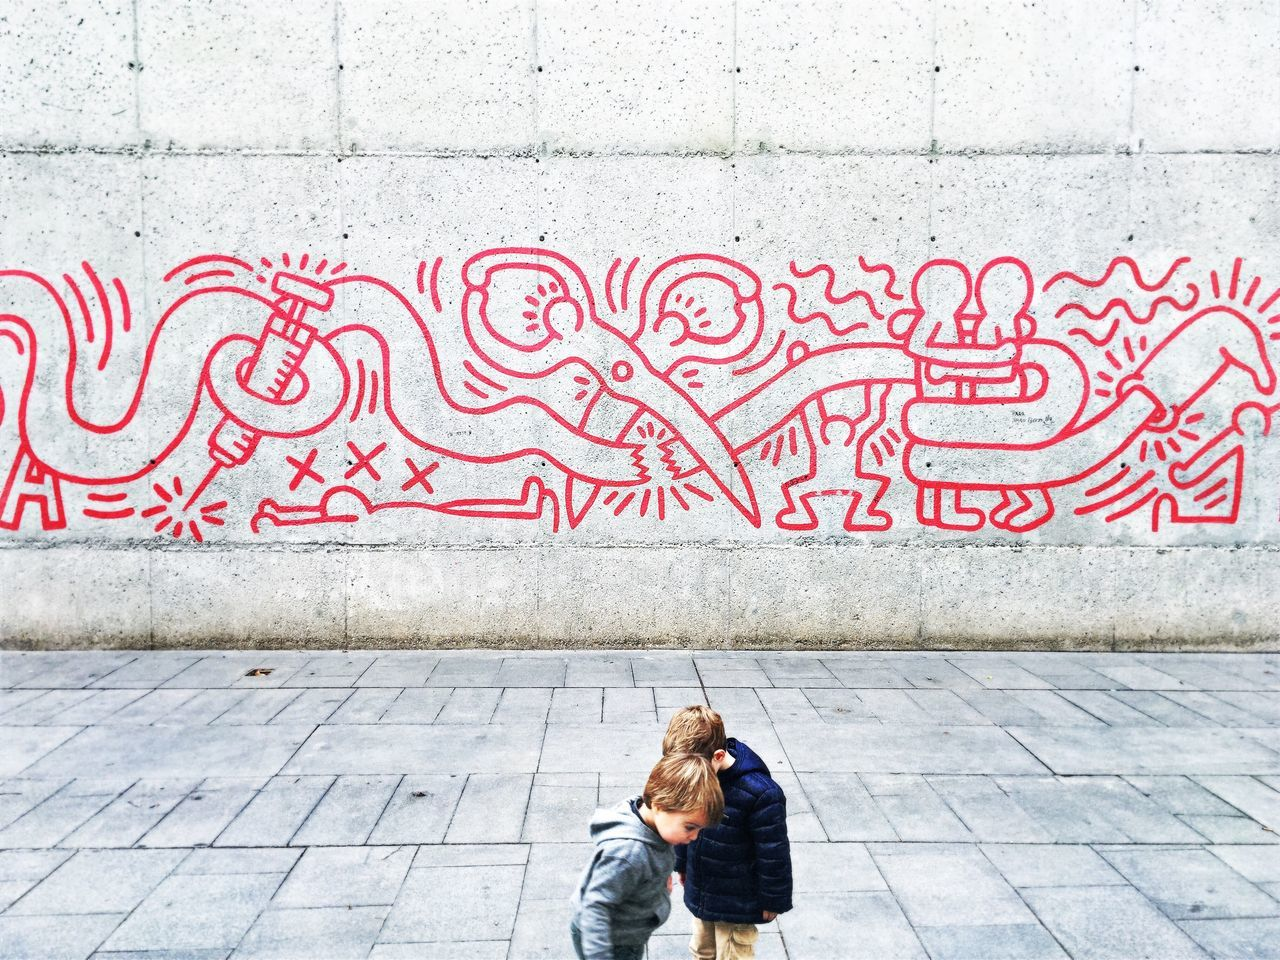 walking with Keith Haring - EyeEm Best Shots The EyeEm Facebook Cover Challenge EyeEm Gallery Showcase: November IPhoneography Mobilephotography Streetphotography Streetart Streetart/graffiti Graffiti Creativity City Life People And Places Barcelona Street Life Minimalism